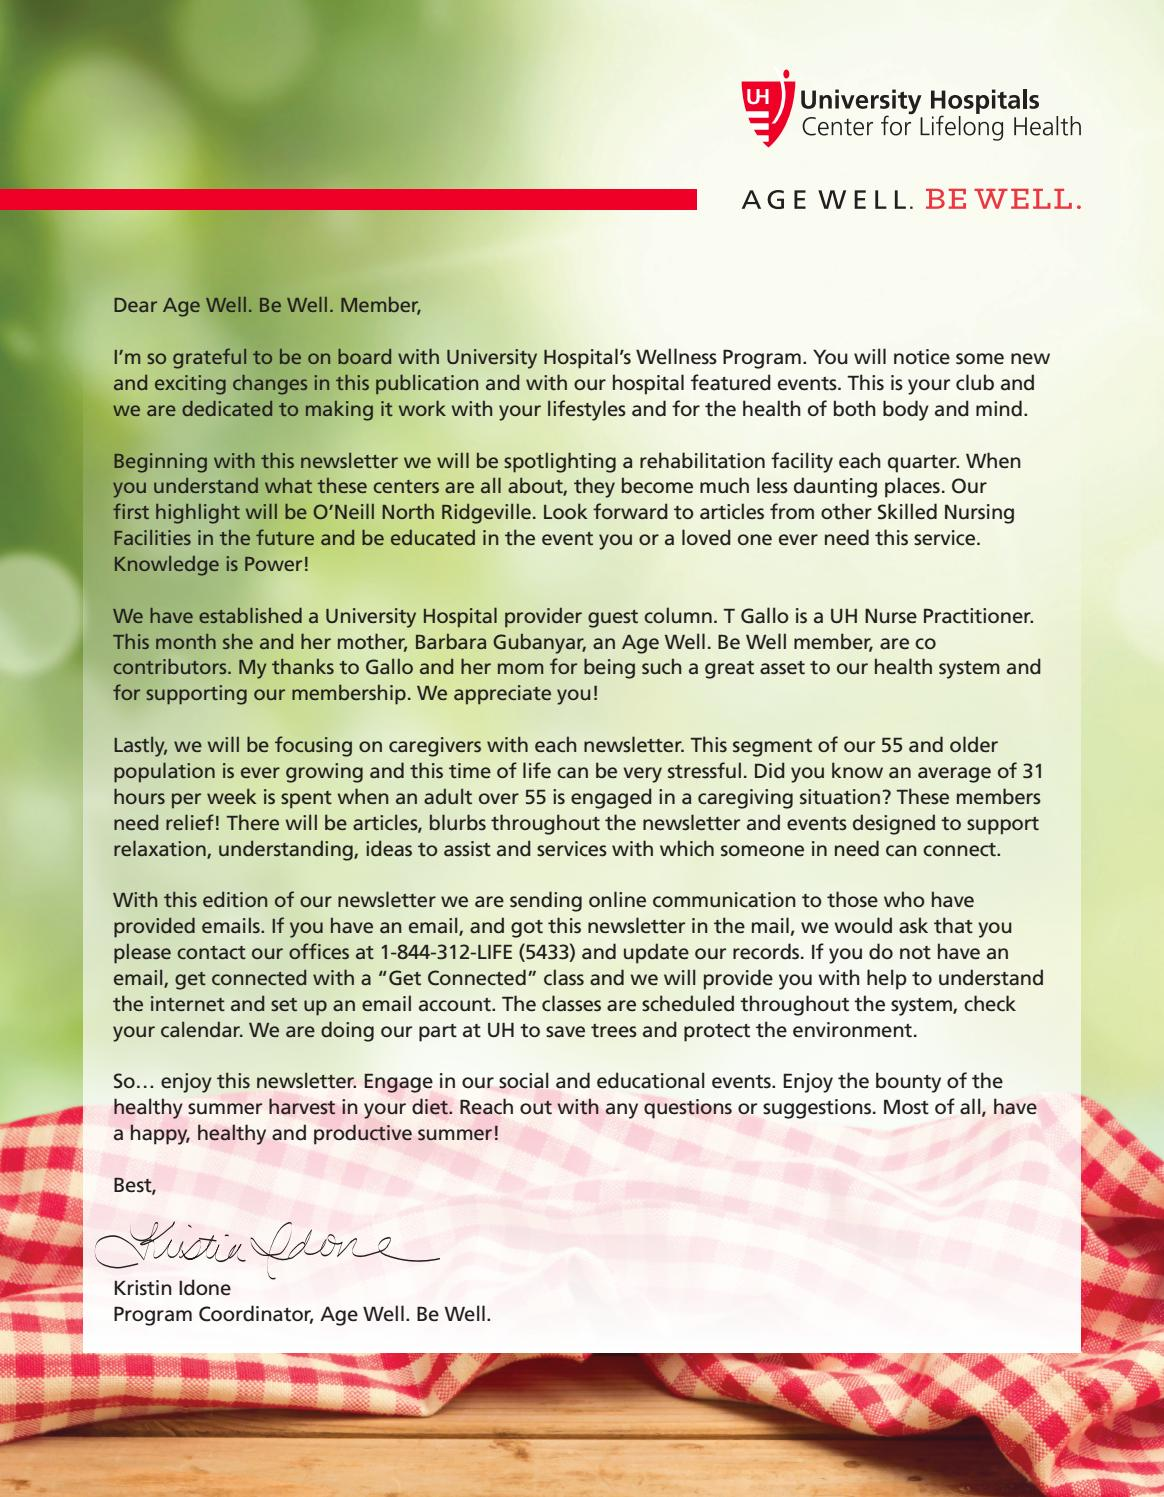 University Hospitals Age Well Be Well Newsletter, West by UH